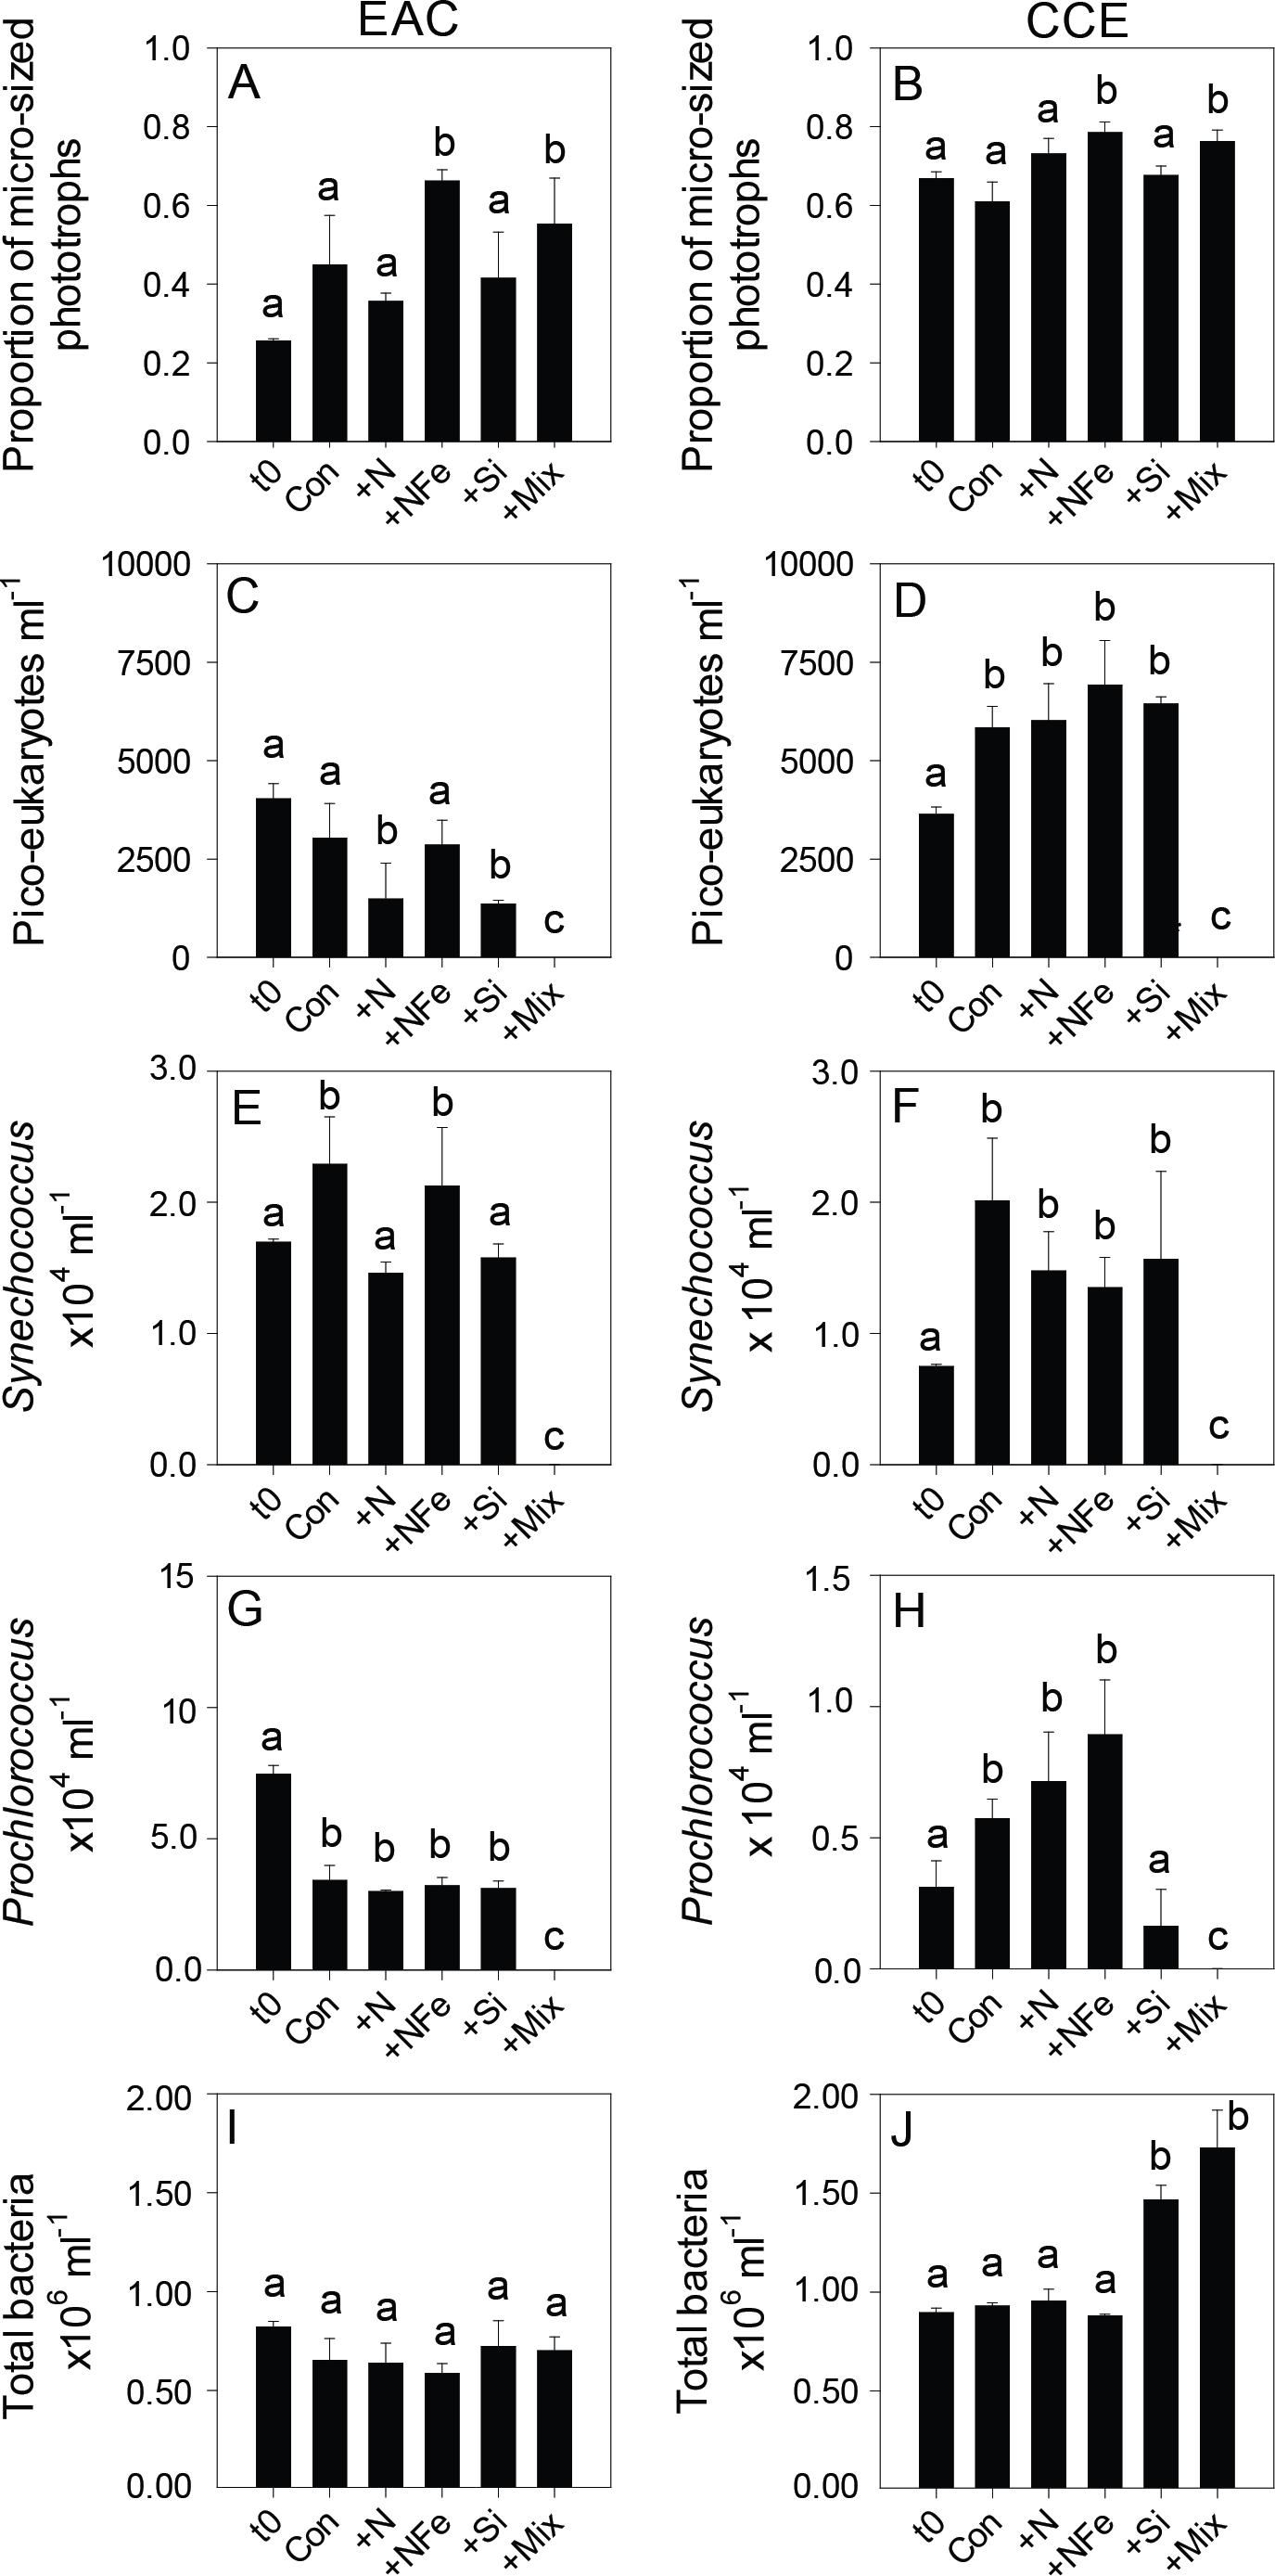 Nutrient Uplift In A Cyclonic Eddy Increases Diversity